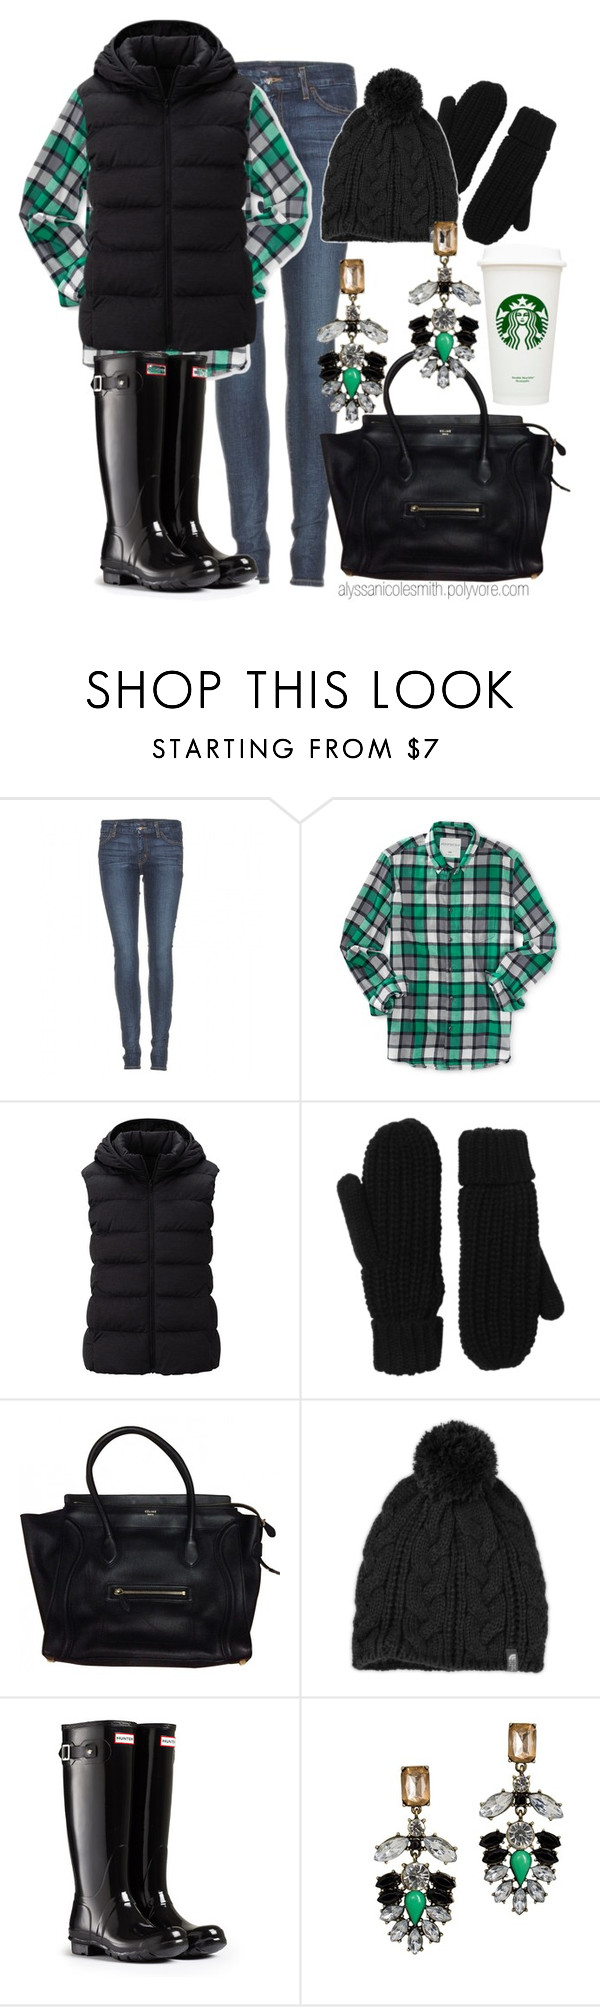 """""""Preppy Girl Winter Style"""" by alyssanicolesmith ❤ liked on Polyvore featuring Koral, Aéropostale, Uniqlo, Monki and The North Face"""